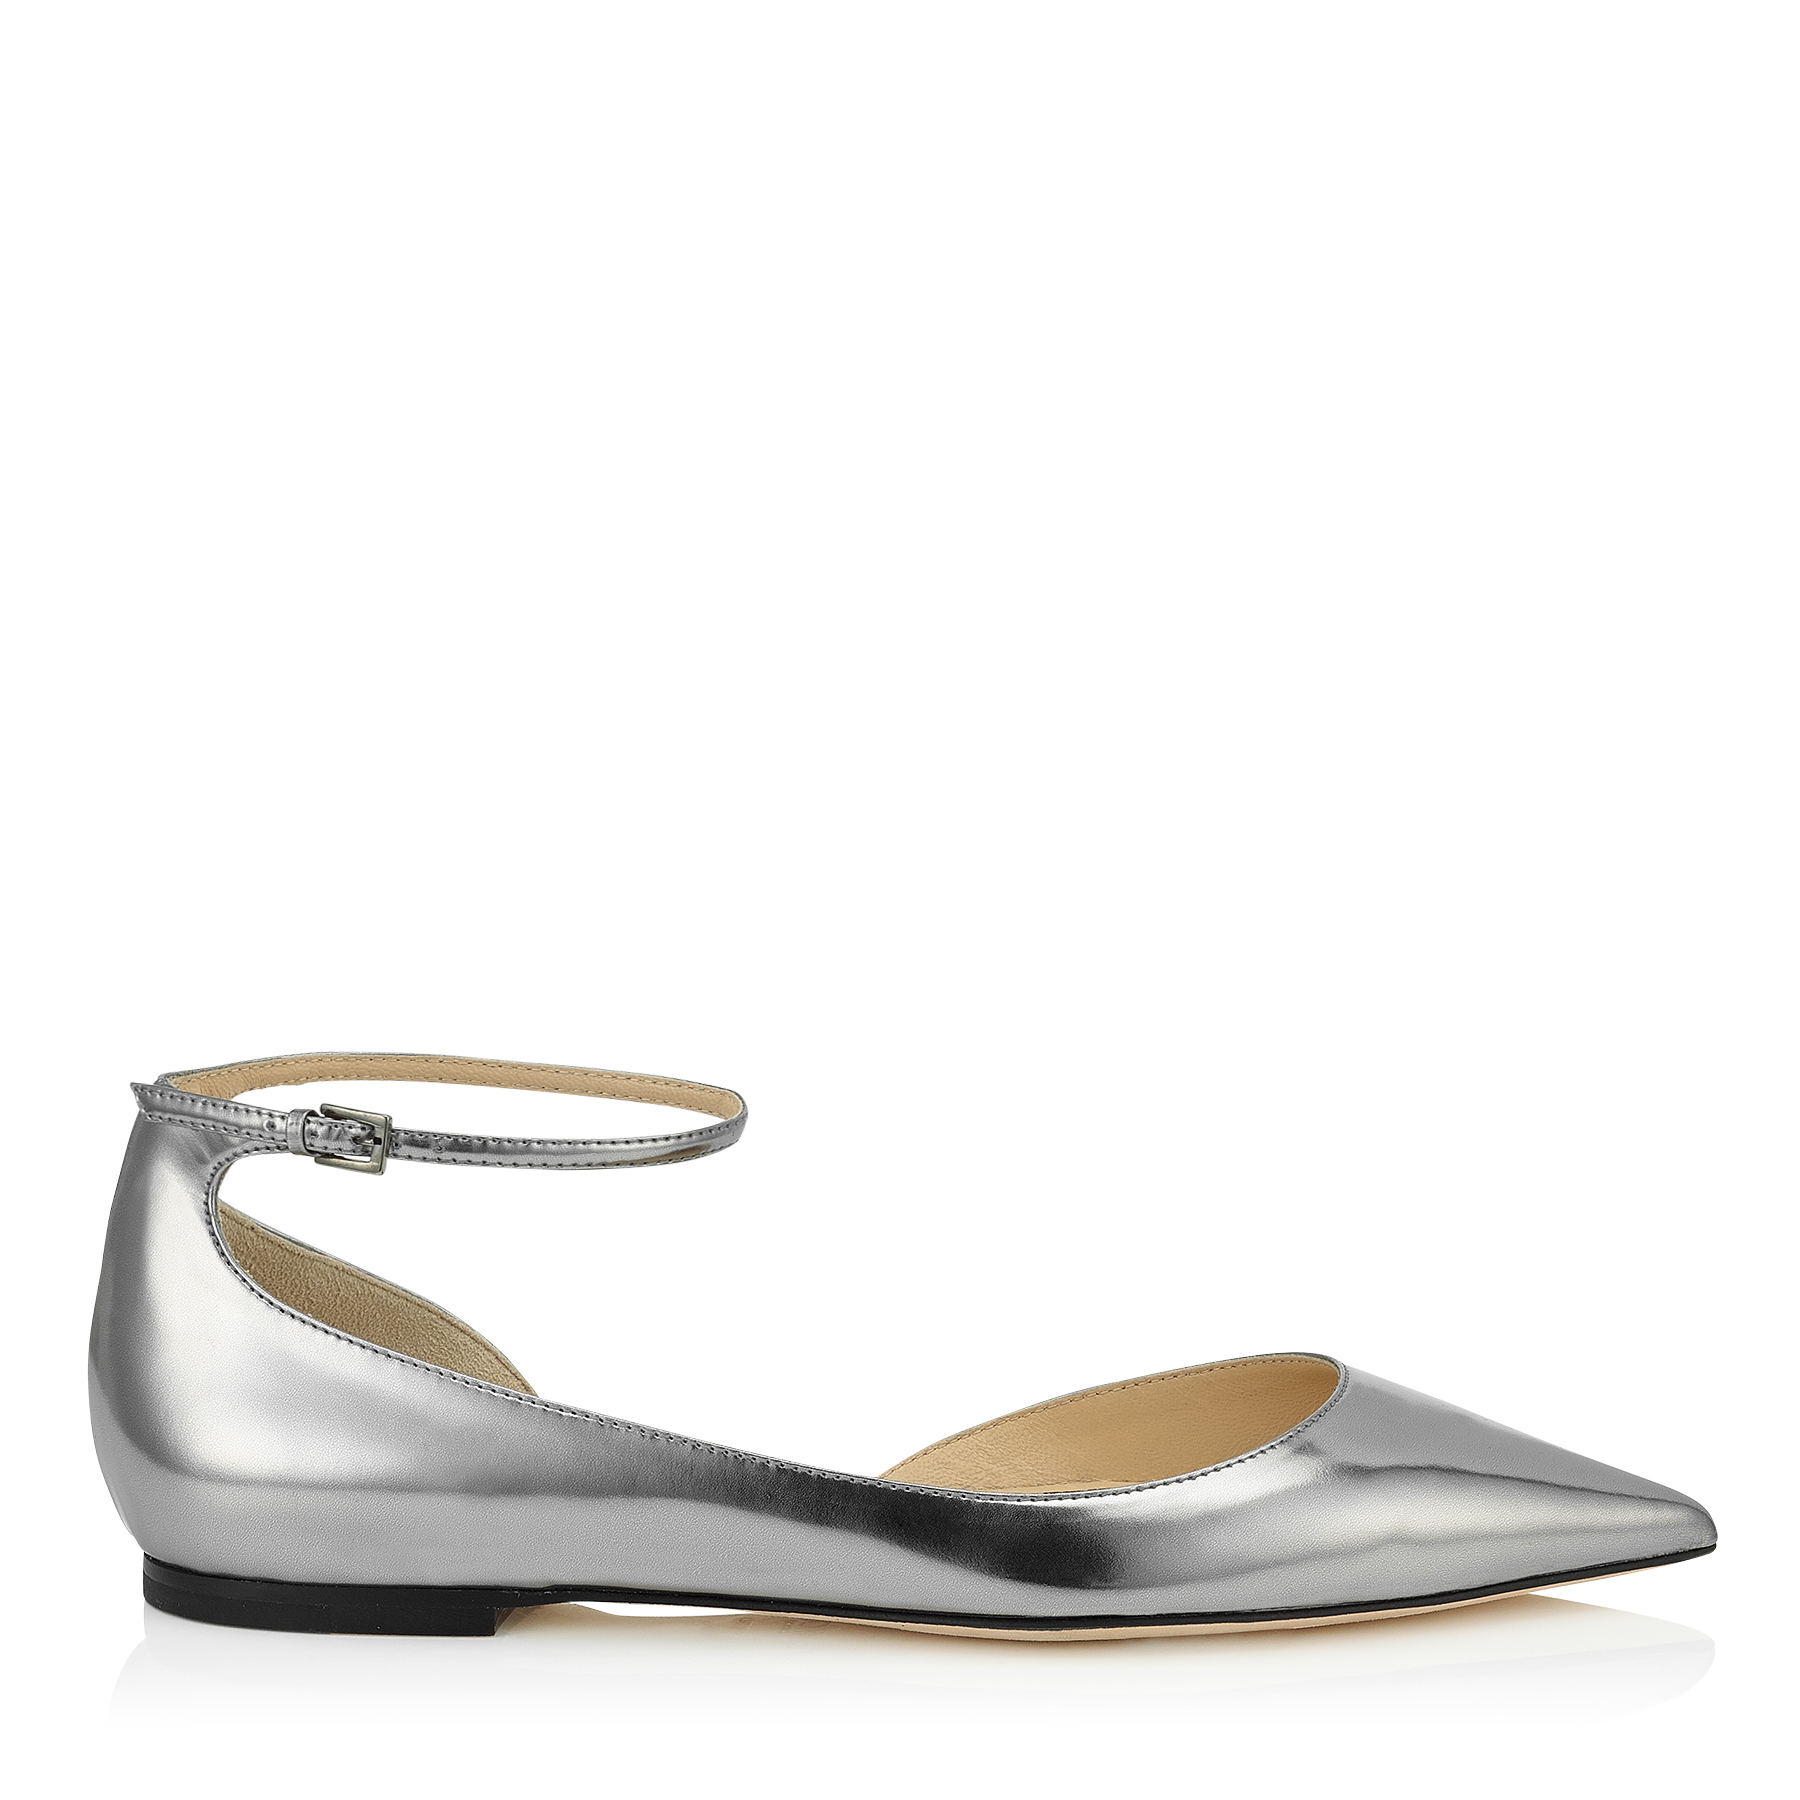 LUCY FLAT Steel Mirror Leather Pointy Toe Flats